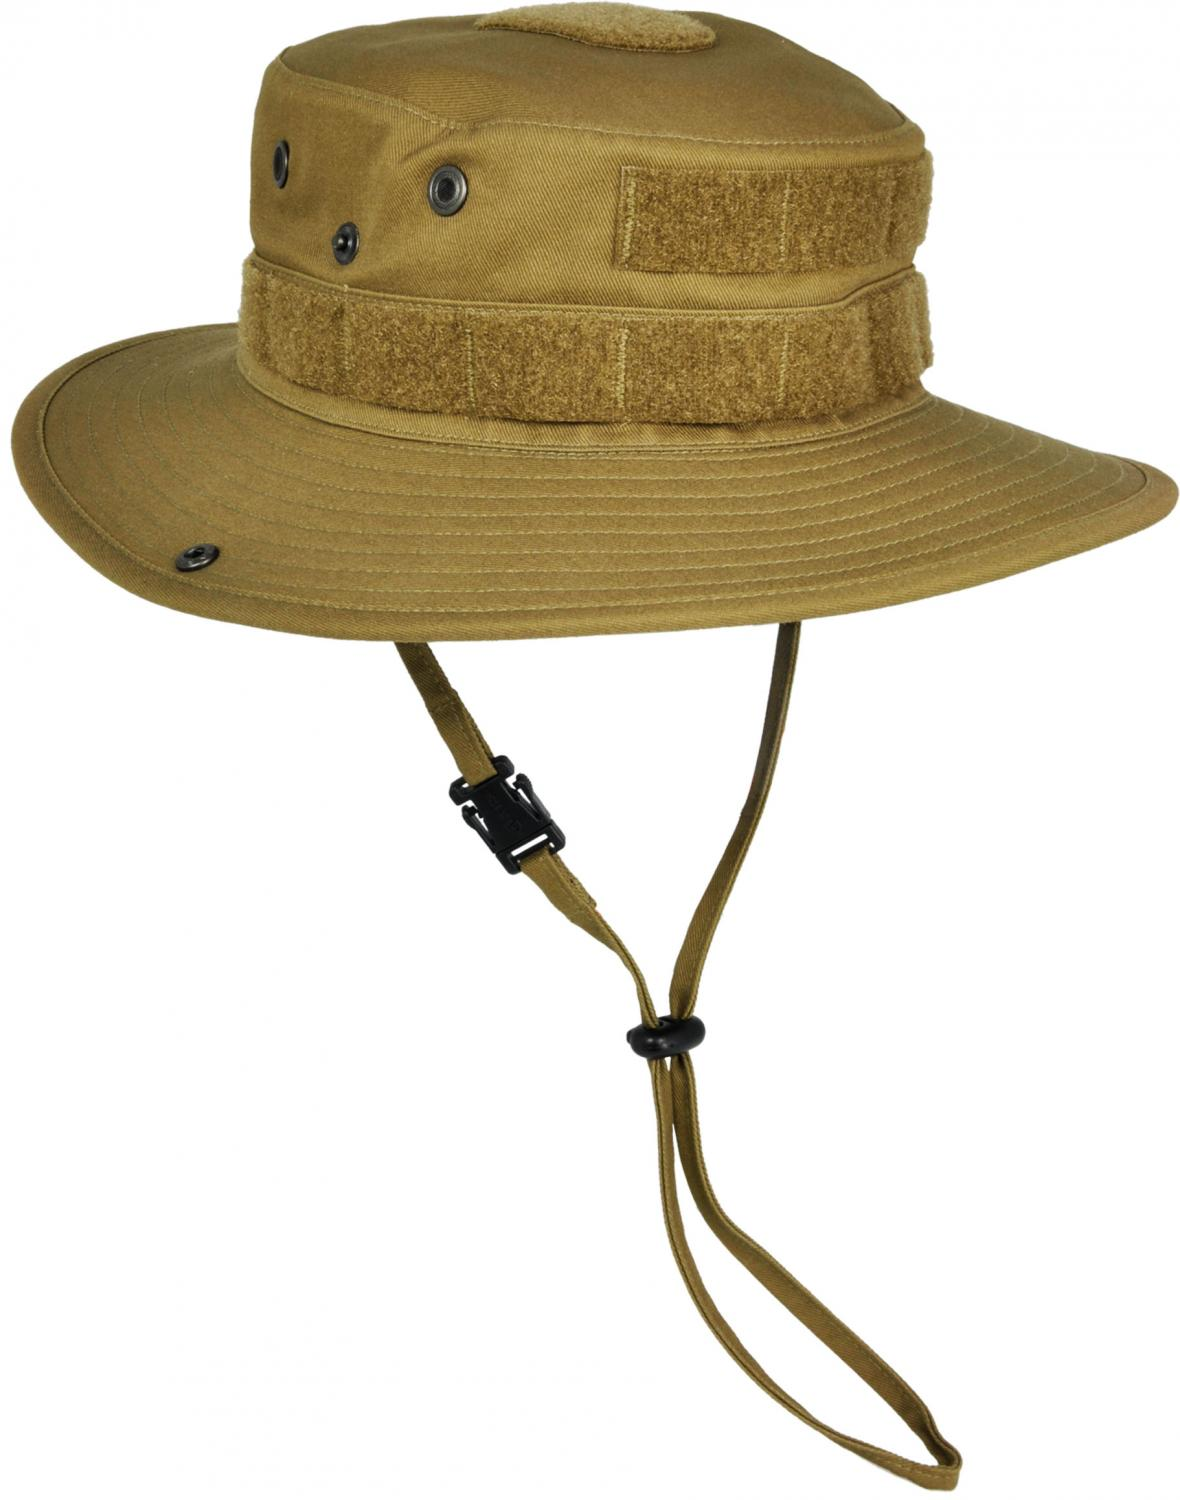 Hazard 4 SunTac Cotton Boonie Hat with MOLLE, Coyote, X Large 7.75 inch